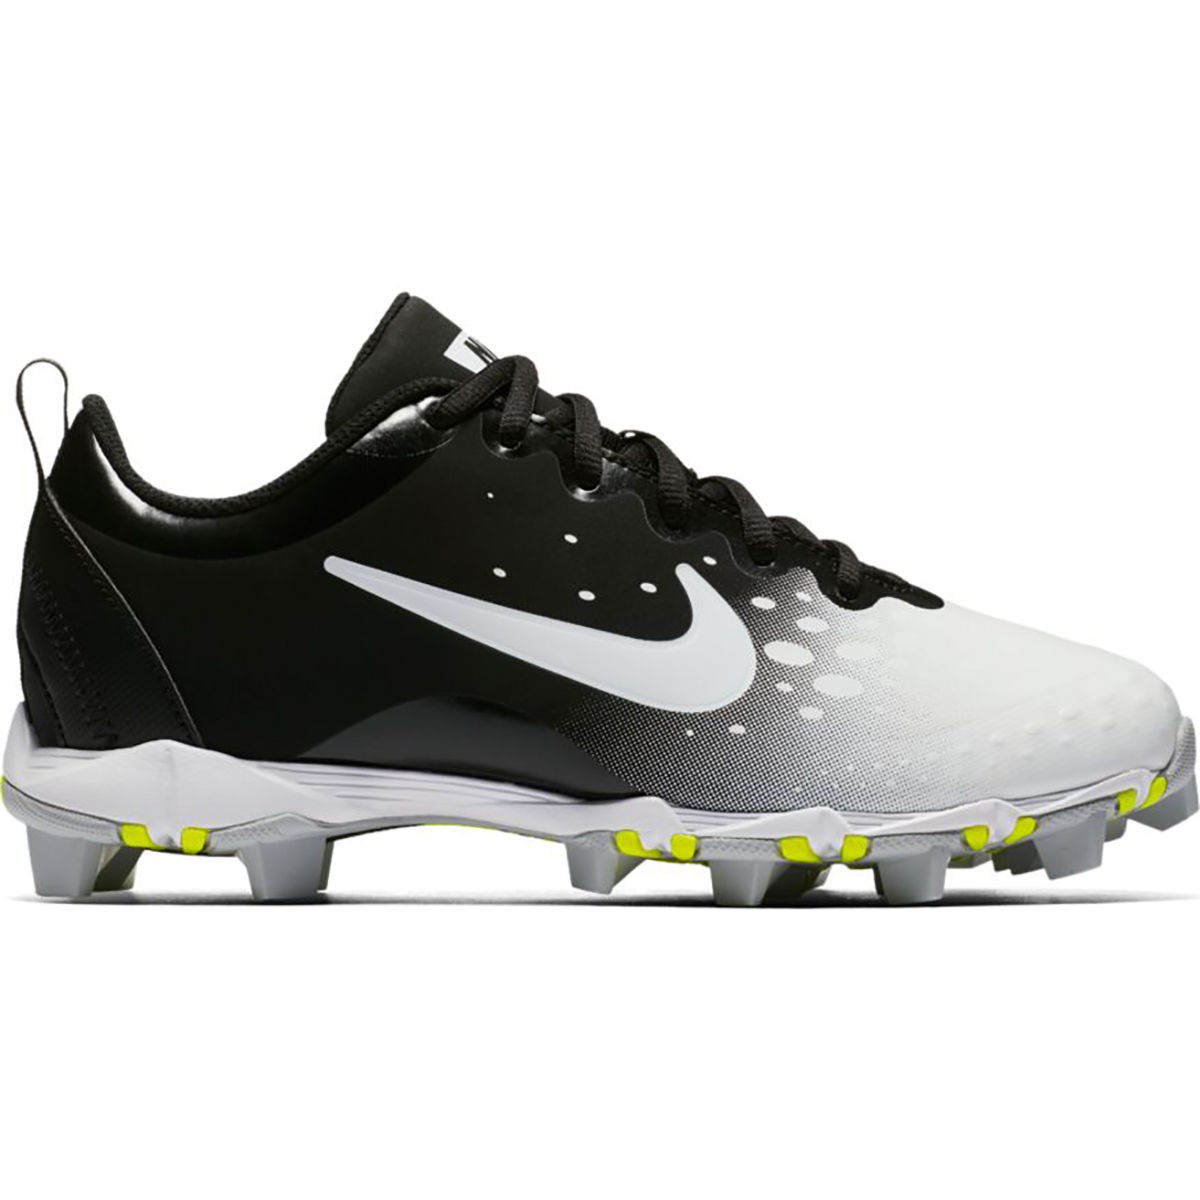 Nike Hyperdiamond 2 Keystone Grade School Girls Softball Cleat